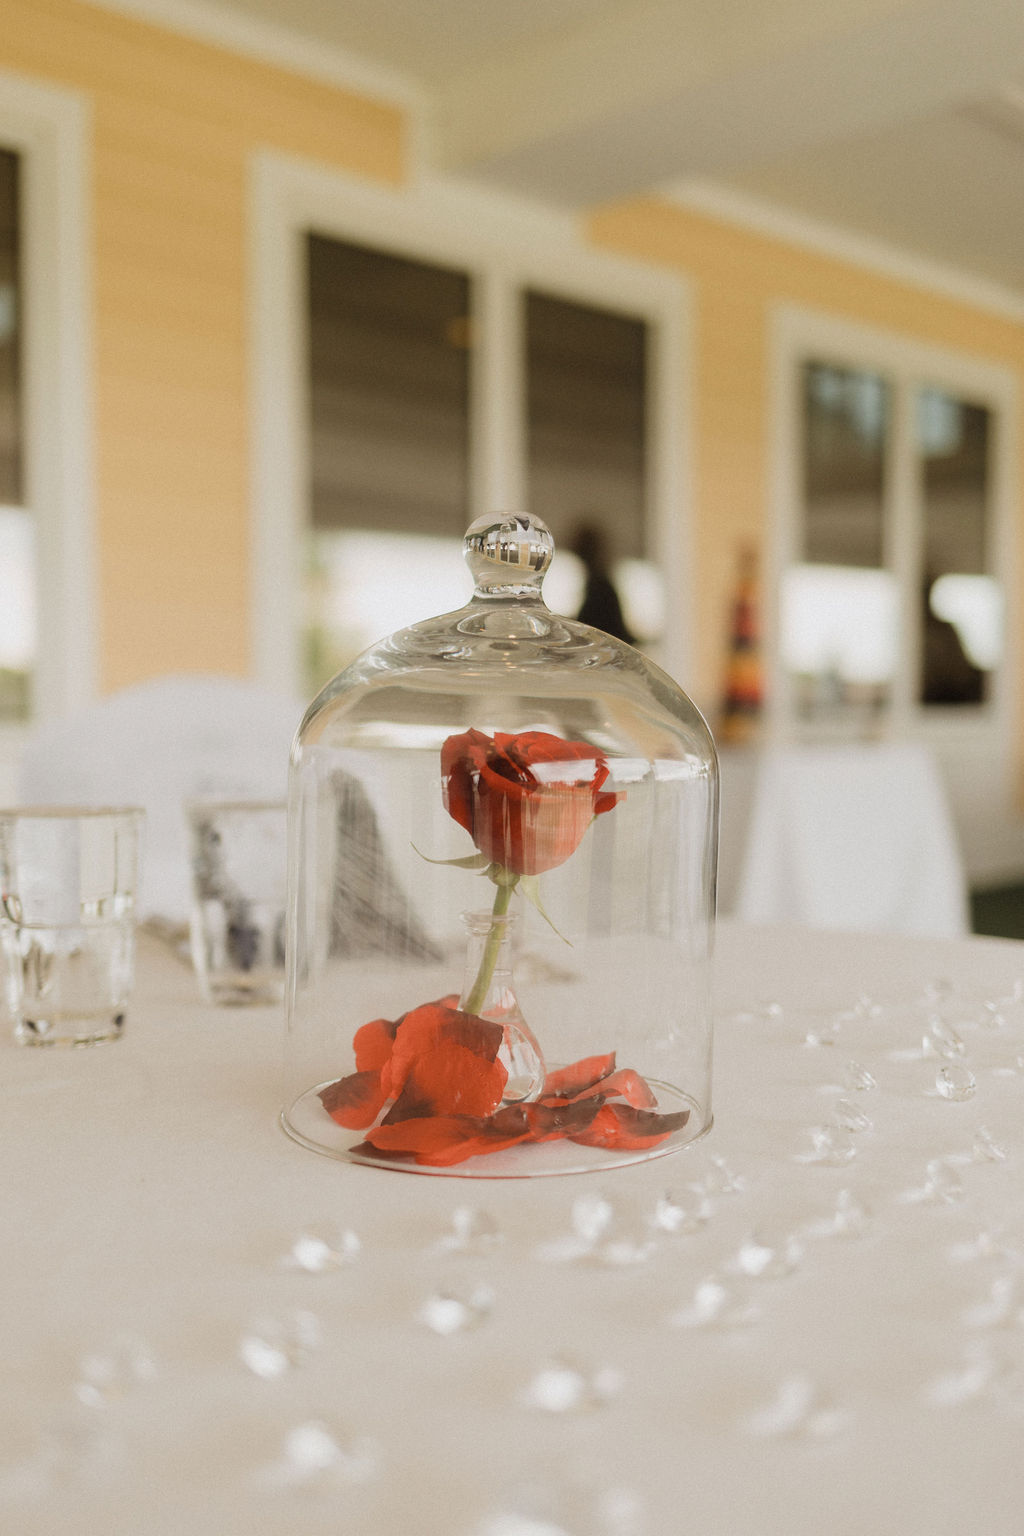 Red Rose in Glass at Beauty and the Beast Wedding